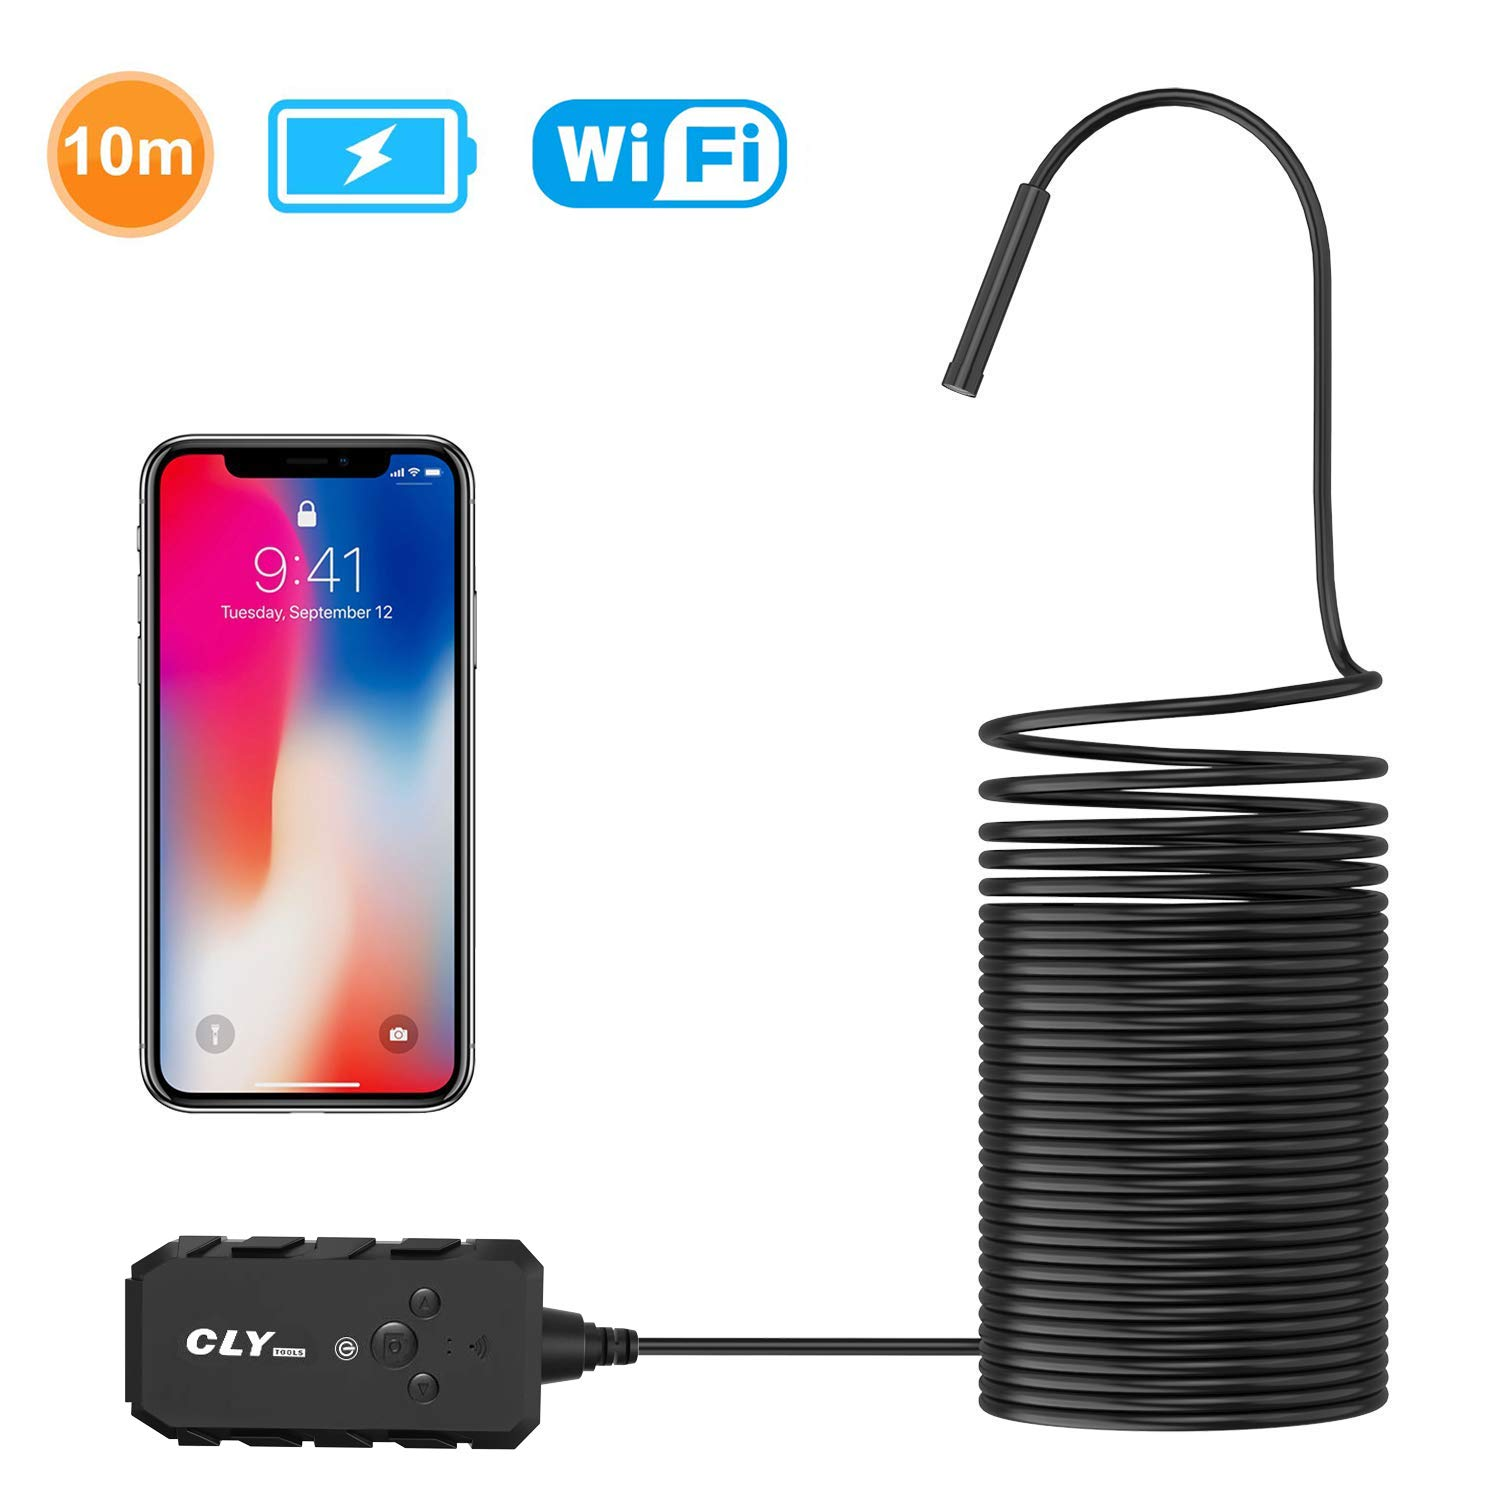 Wireless Endoscope, CLY Semi-Rigid Wireless Borescope WiFi Inspection Camera 2.0 Megapixels HD Endoscope Camera 5.5mm Snake Camera with 2000 mAh Battey for Android iOS Smartphone and Tablet (10M)